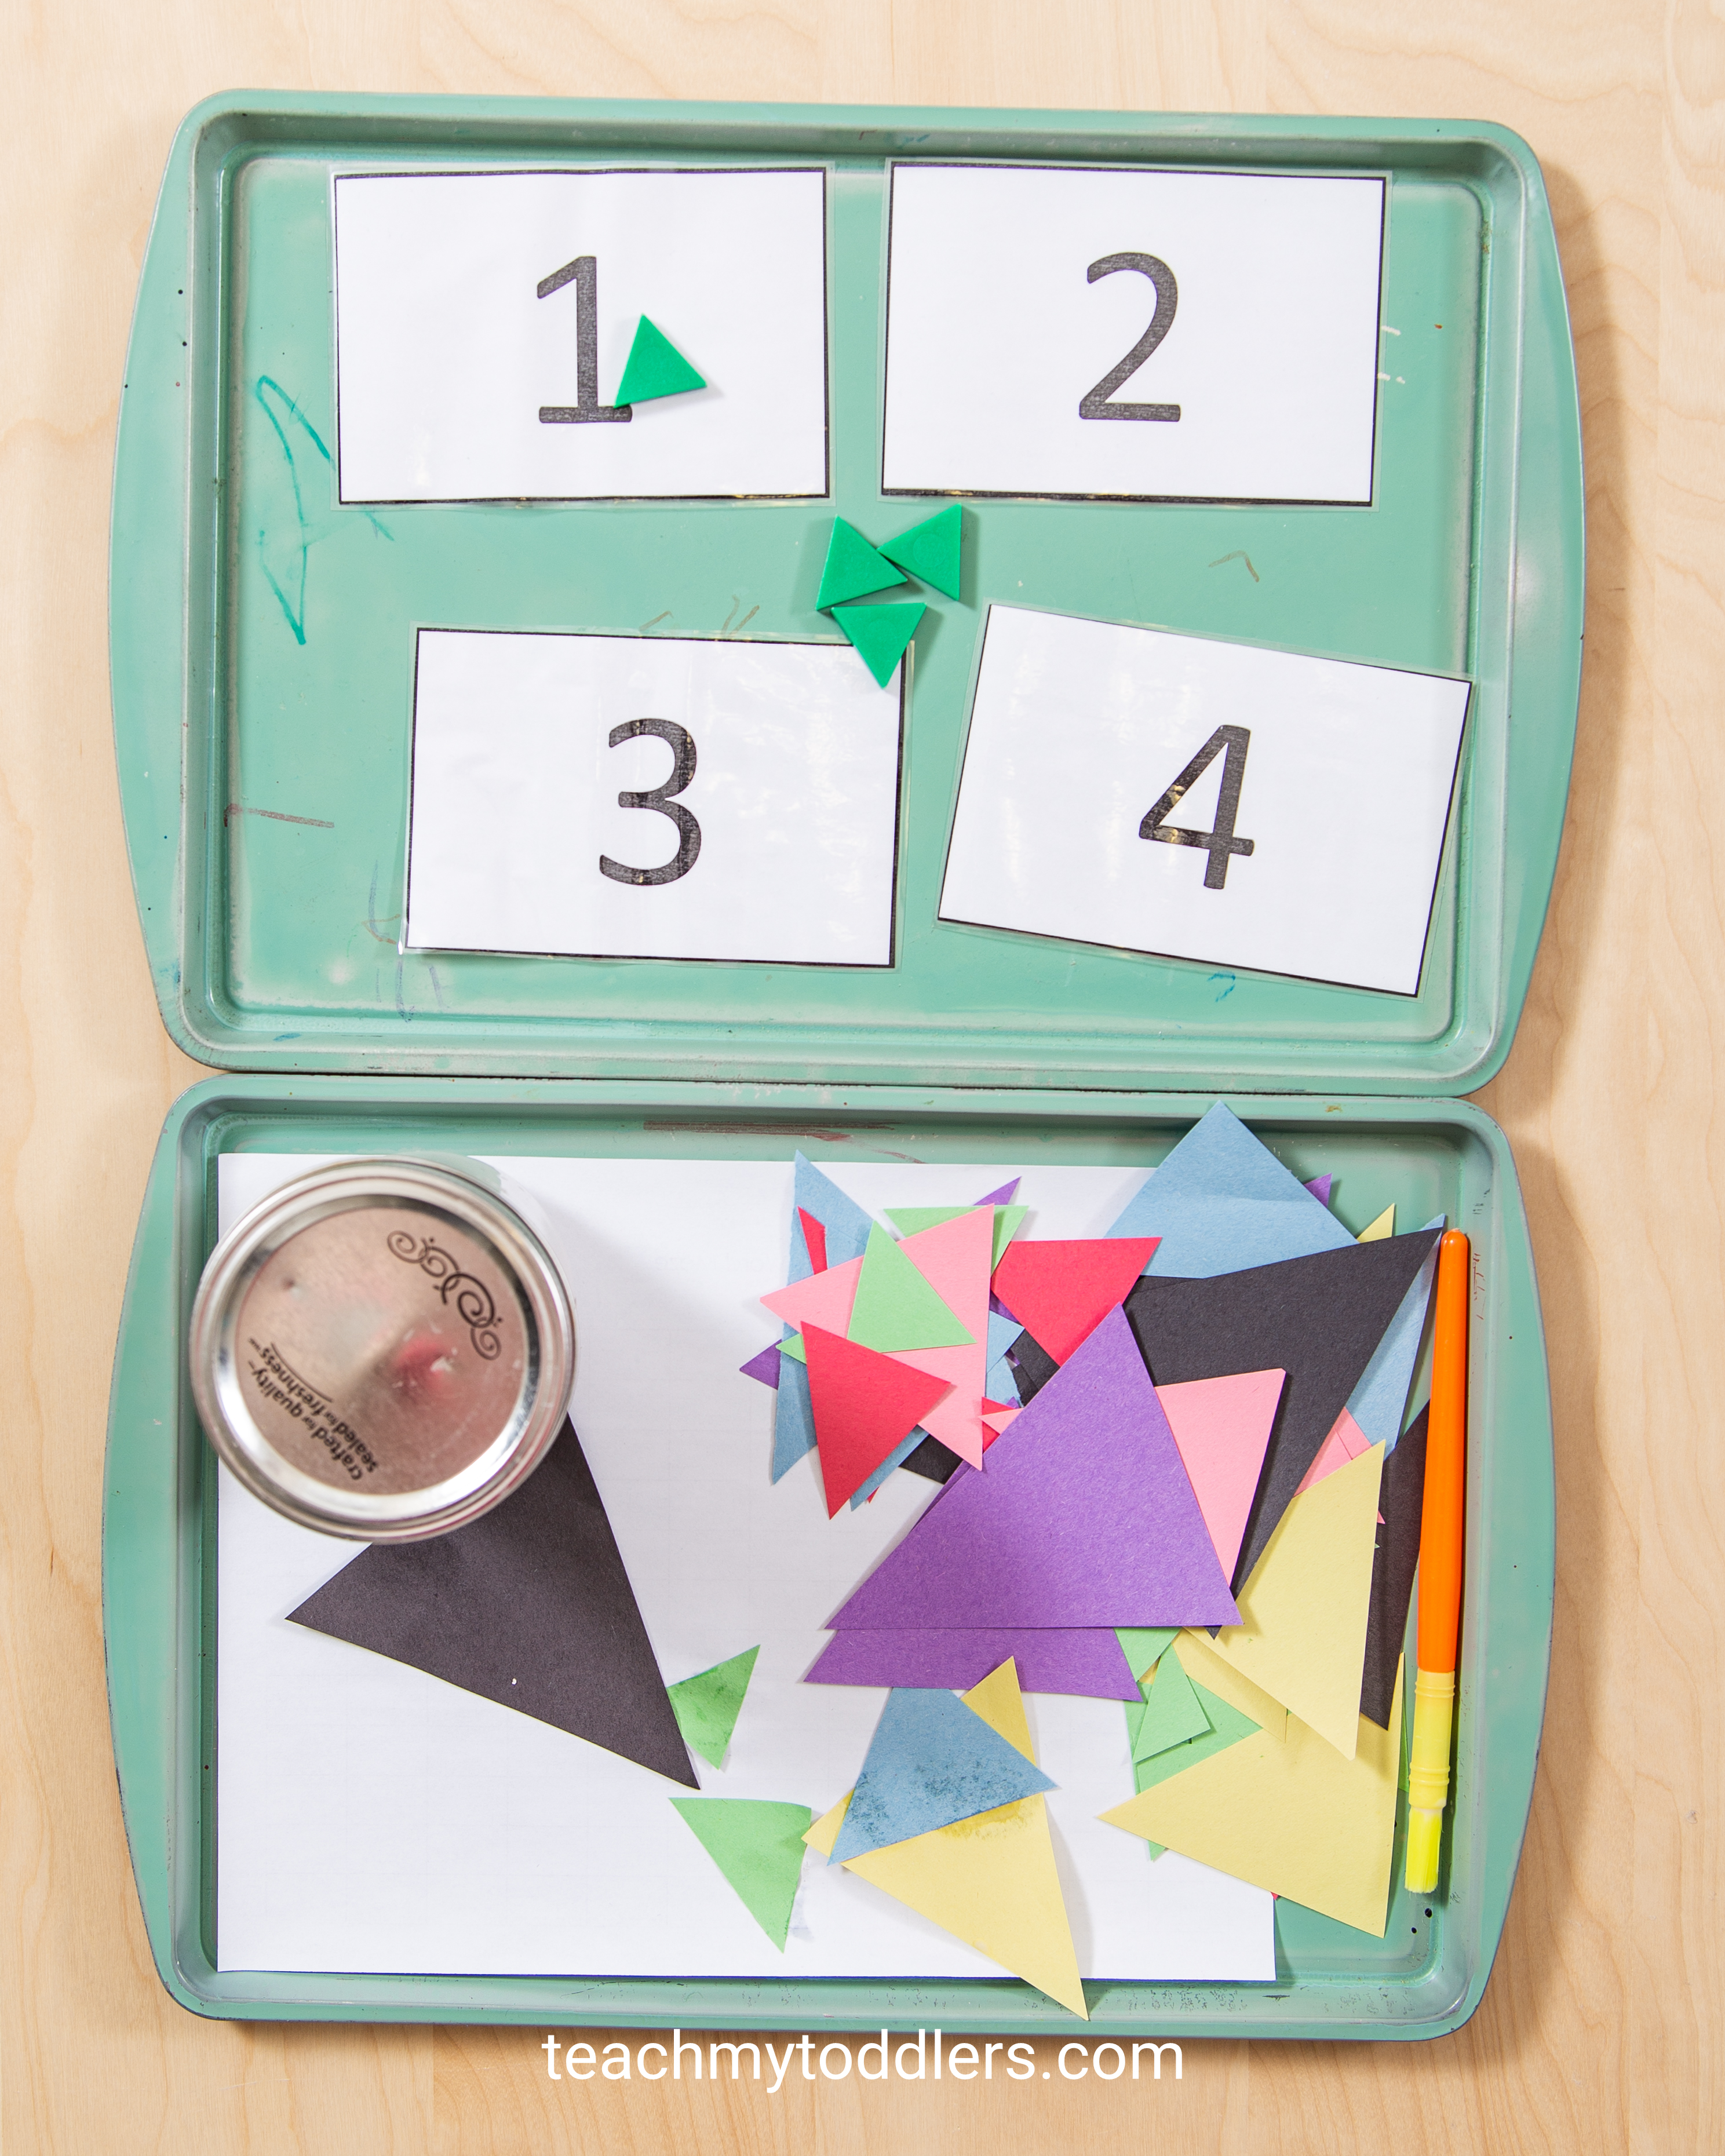 Discover how to use these triangle activities to teach your toddlers shapes